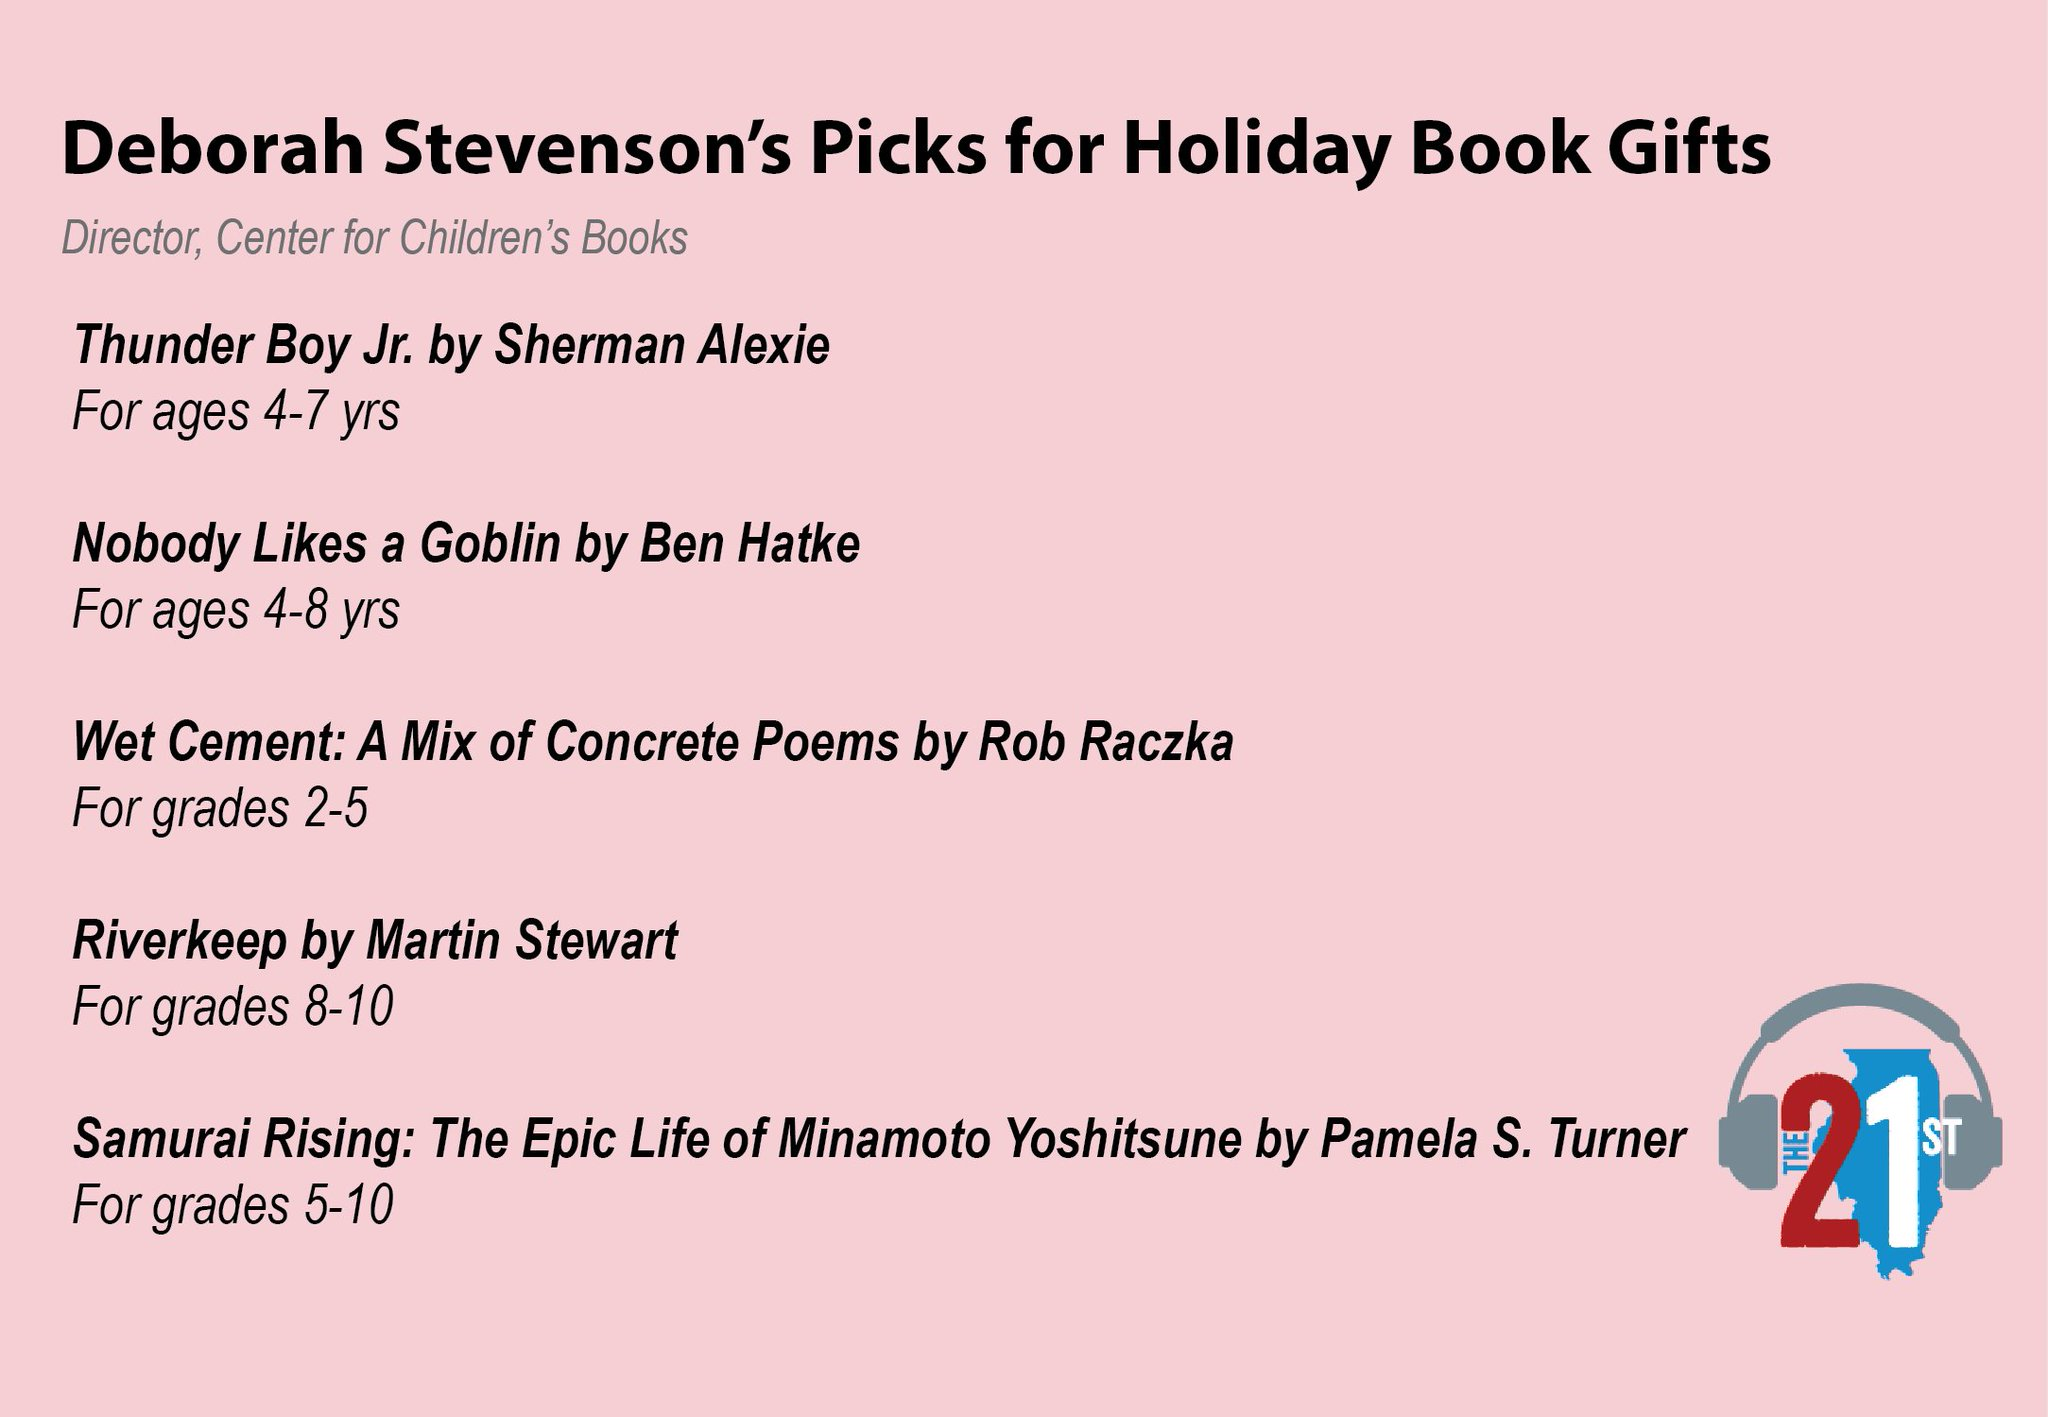 holiday book guide 2016 electoral college explained lucy smith s deborah stevenson director of the center for children s books at ischoolui shared holiday picks